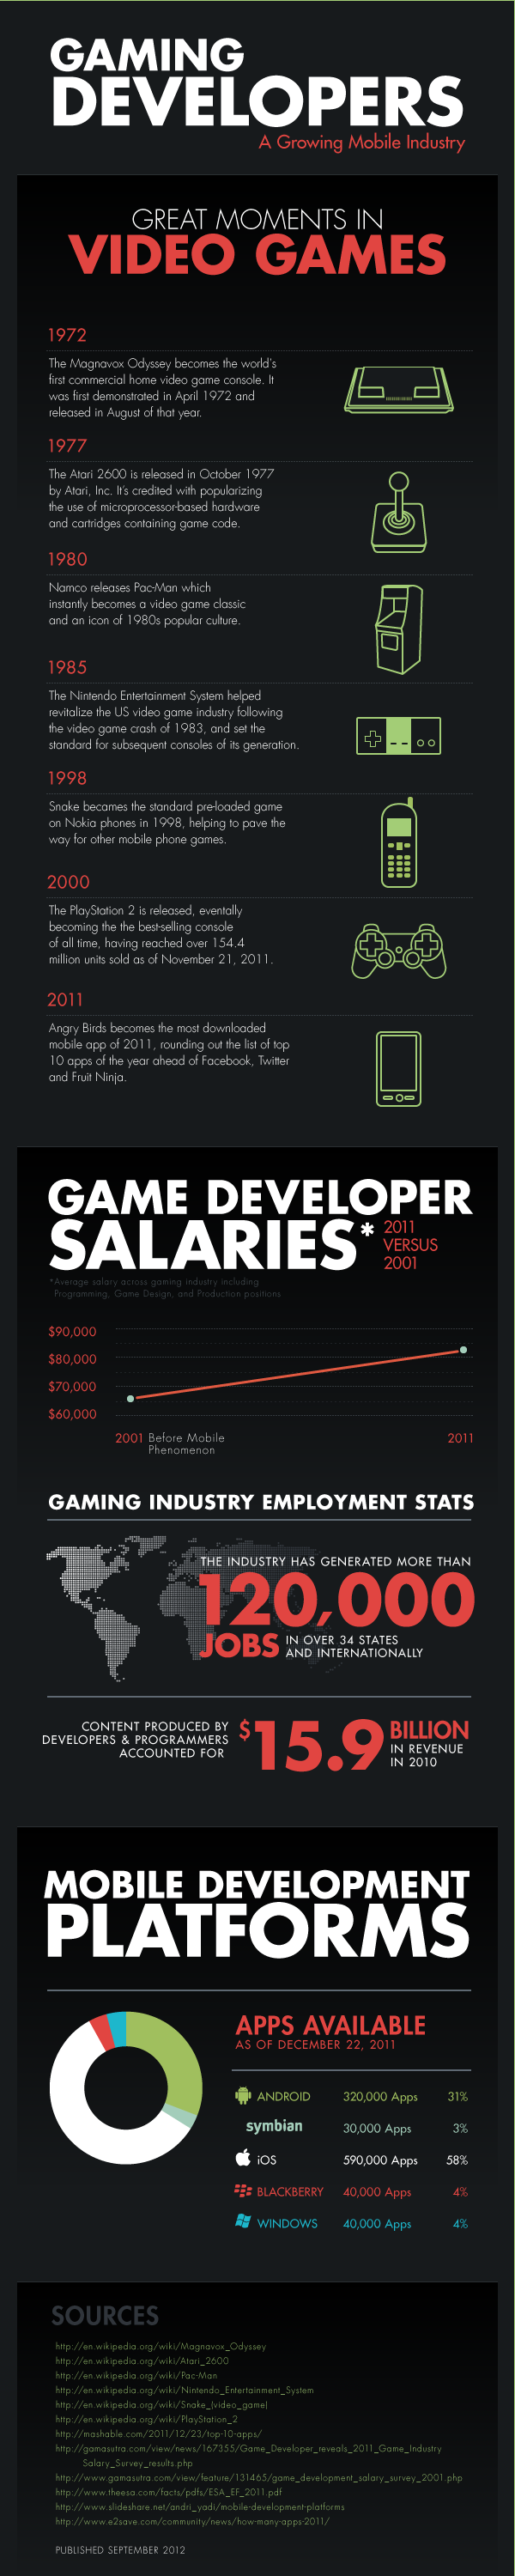 Mobile Gaming: A Growing Industry